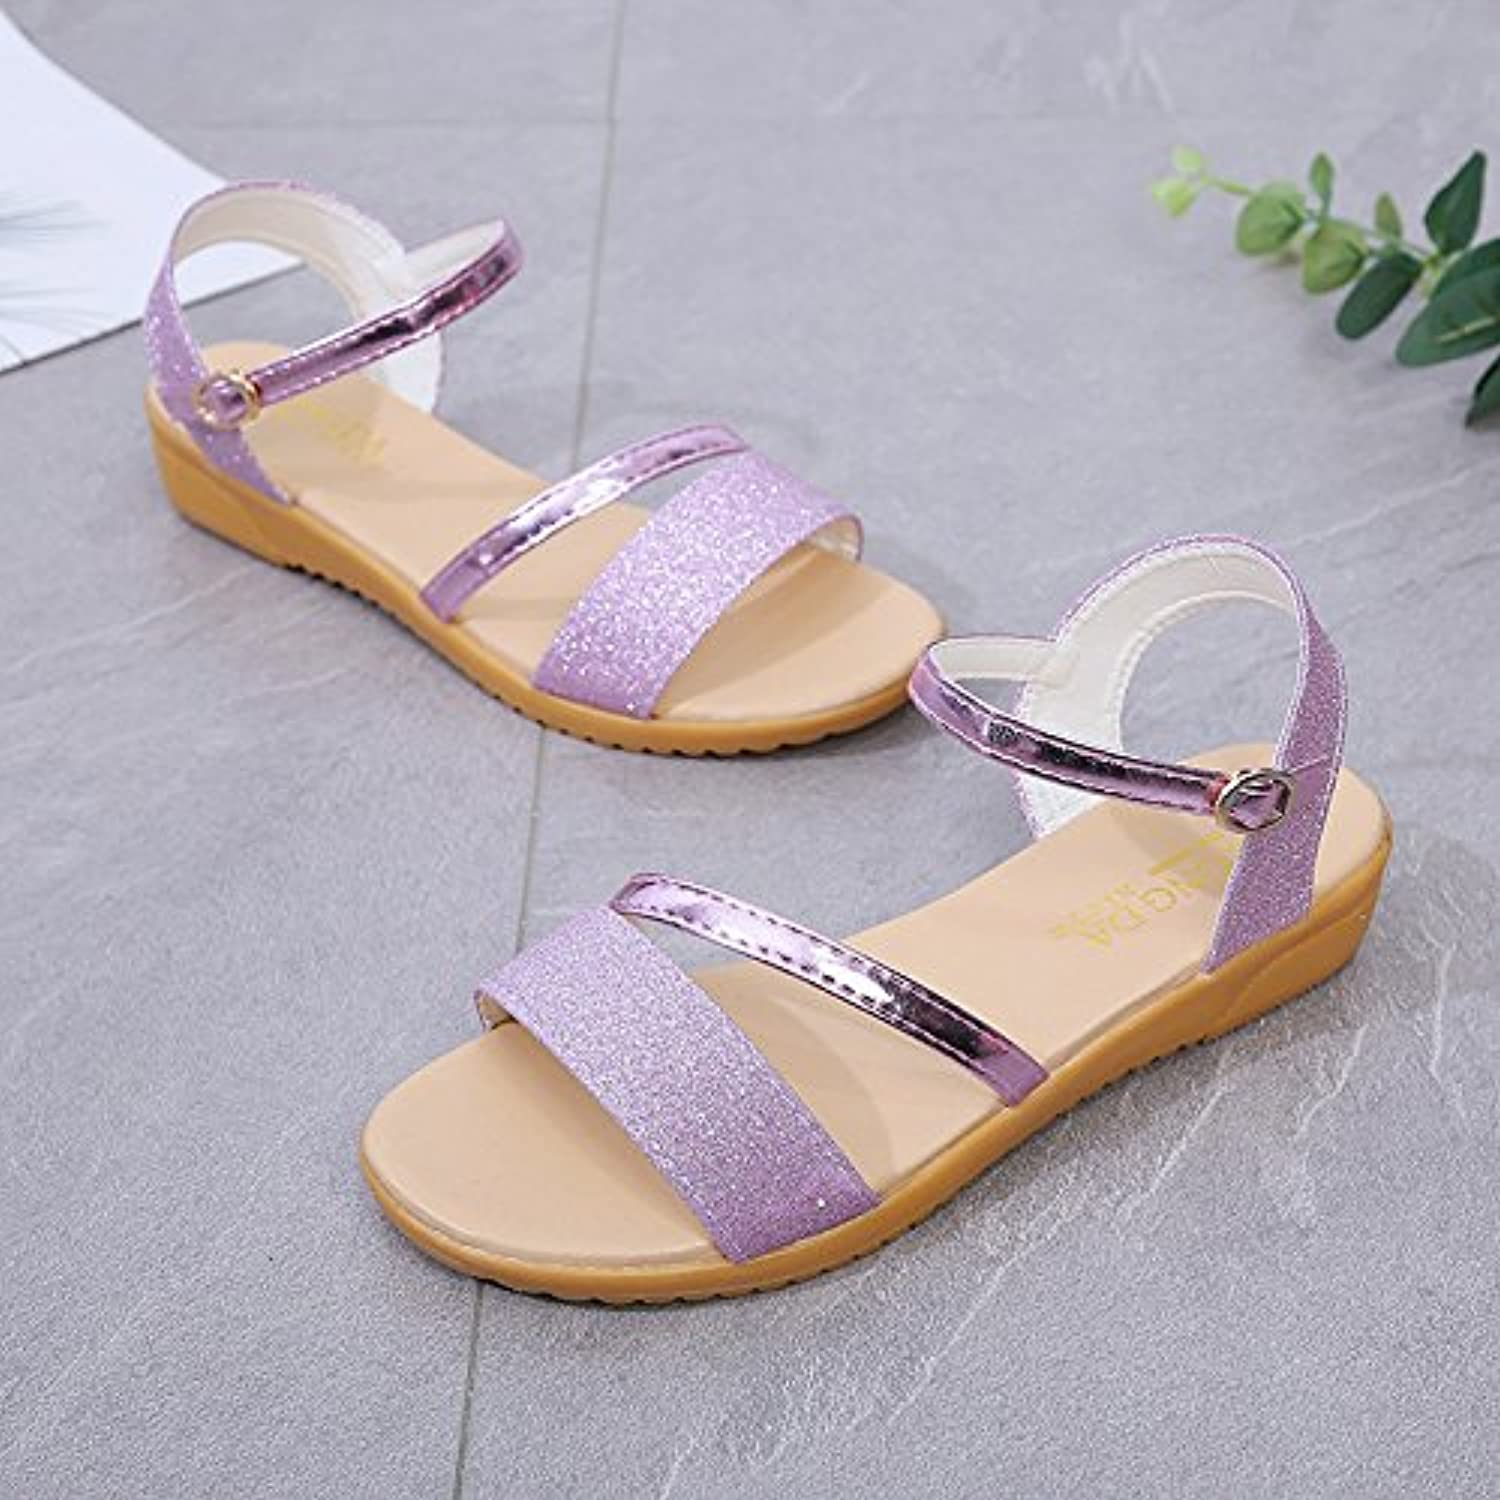 Sandals, Summer Casual Sandals, Round Head, Toes, Low shoes, Flat Heels.